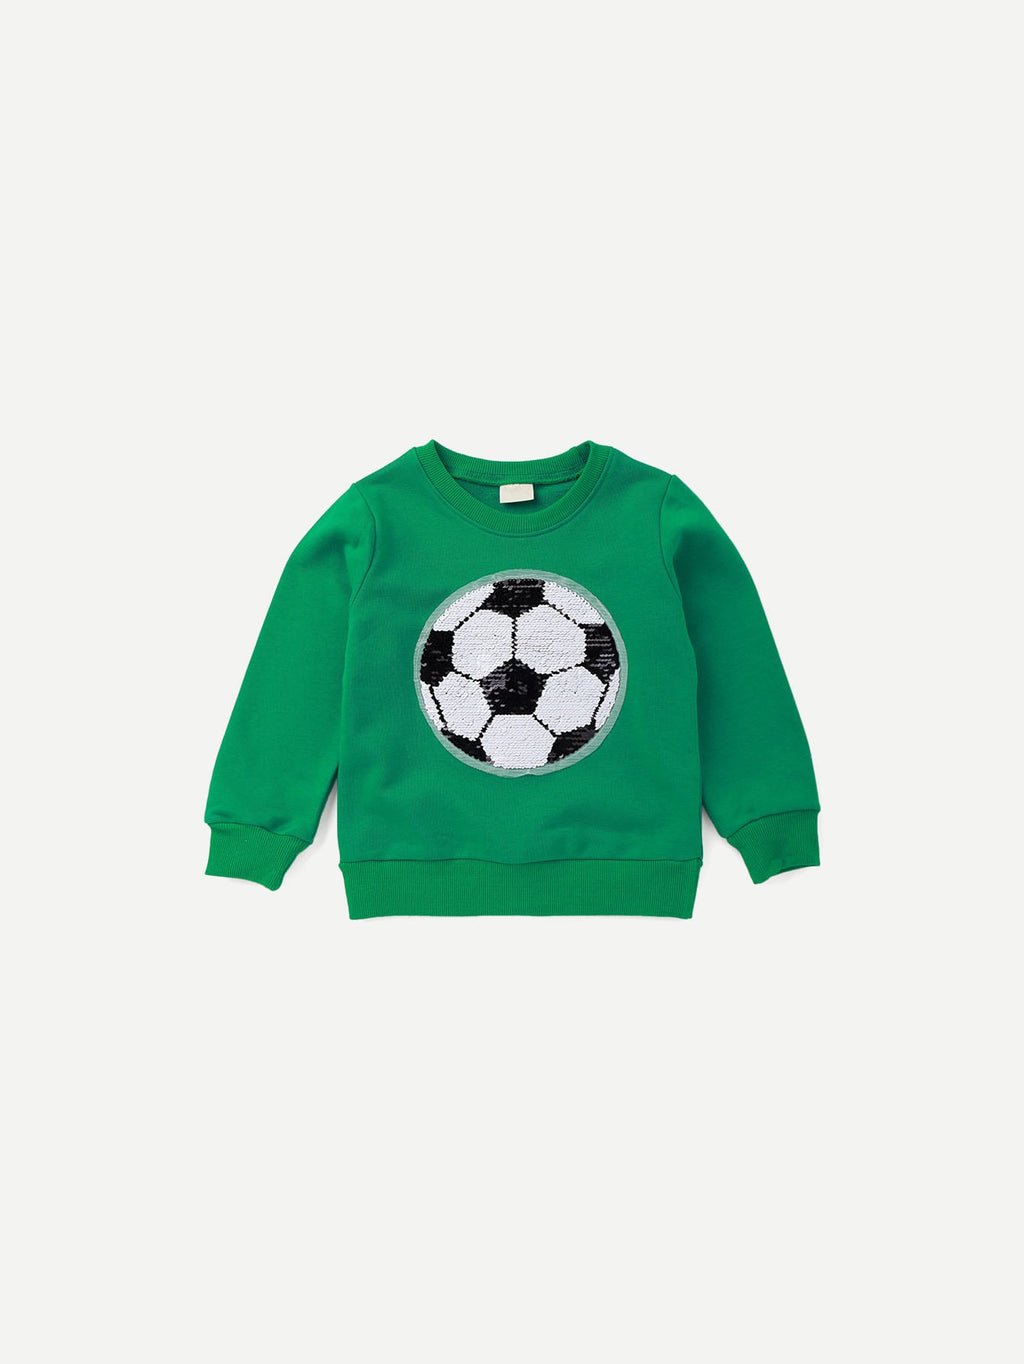 Toddler Boy Sweatshirt - Football Print Sweatshirt